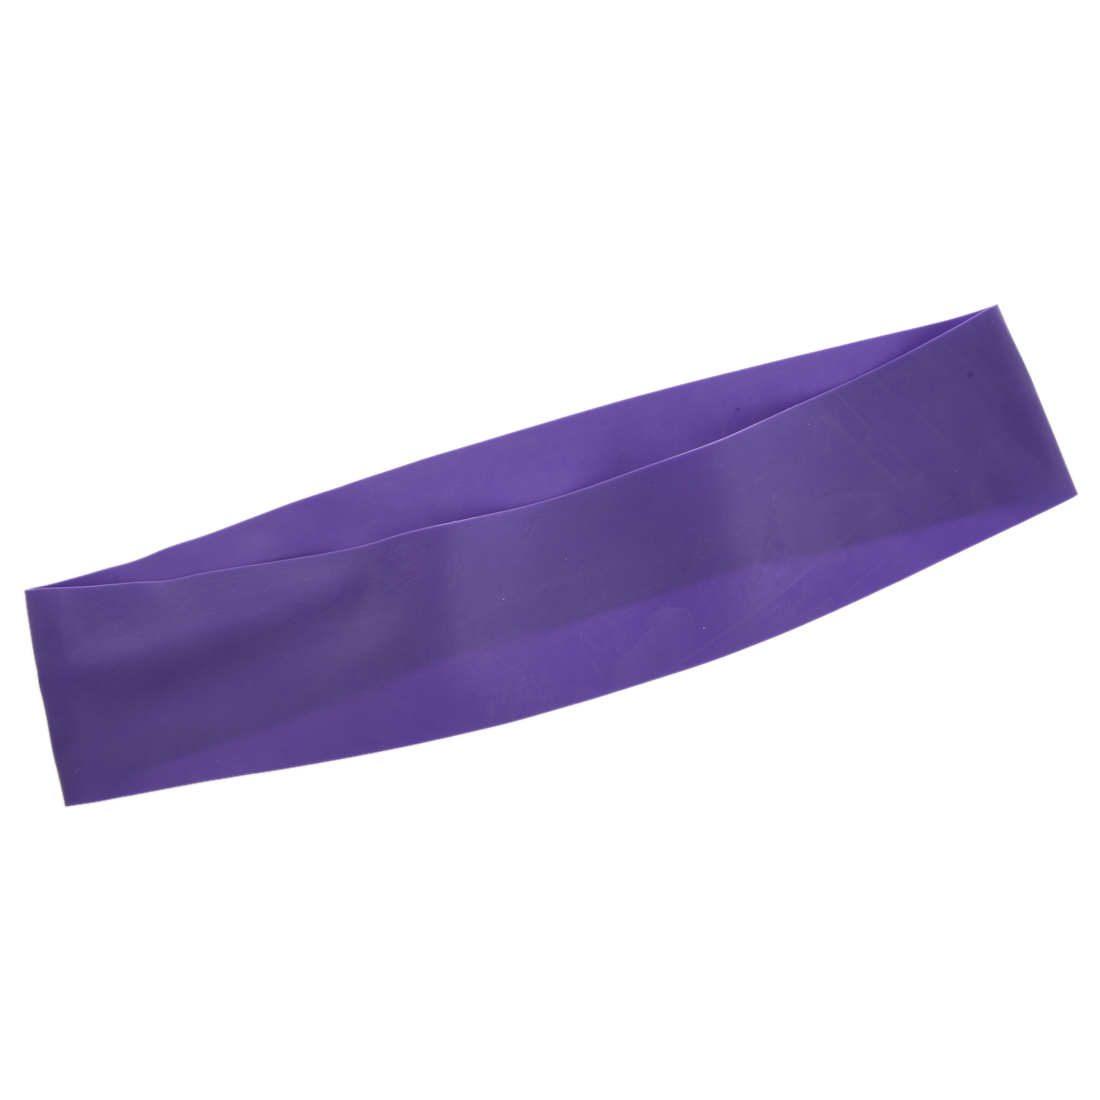 Wholesale! Training Exercise Bands 12 Wrist / Ankle - Purple